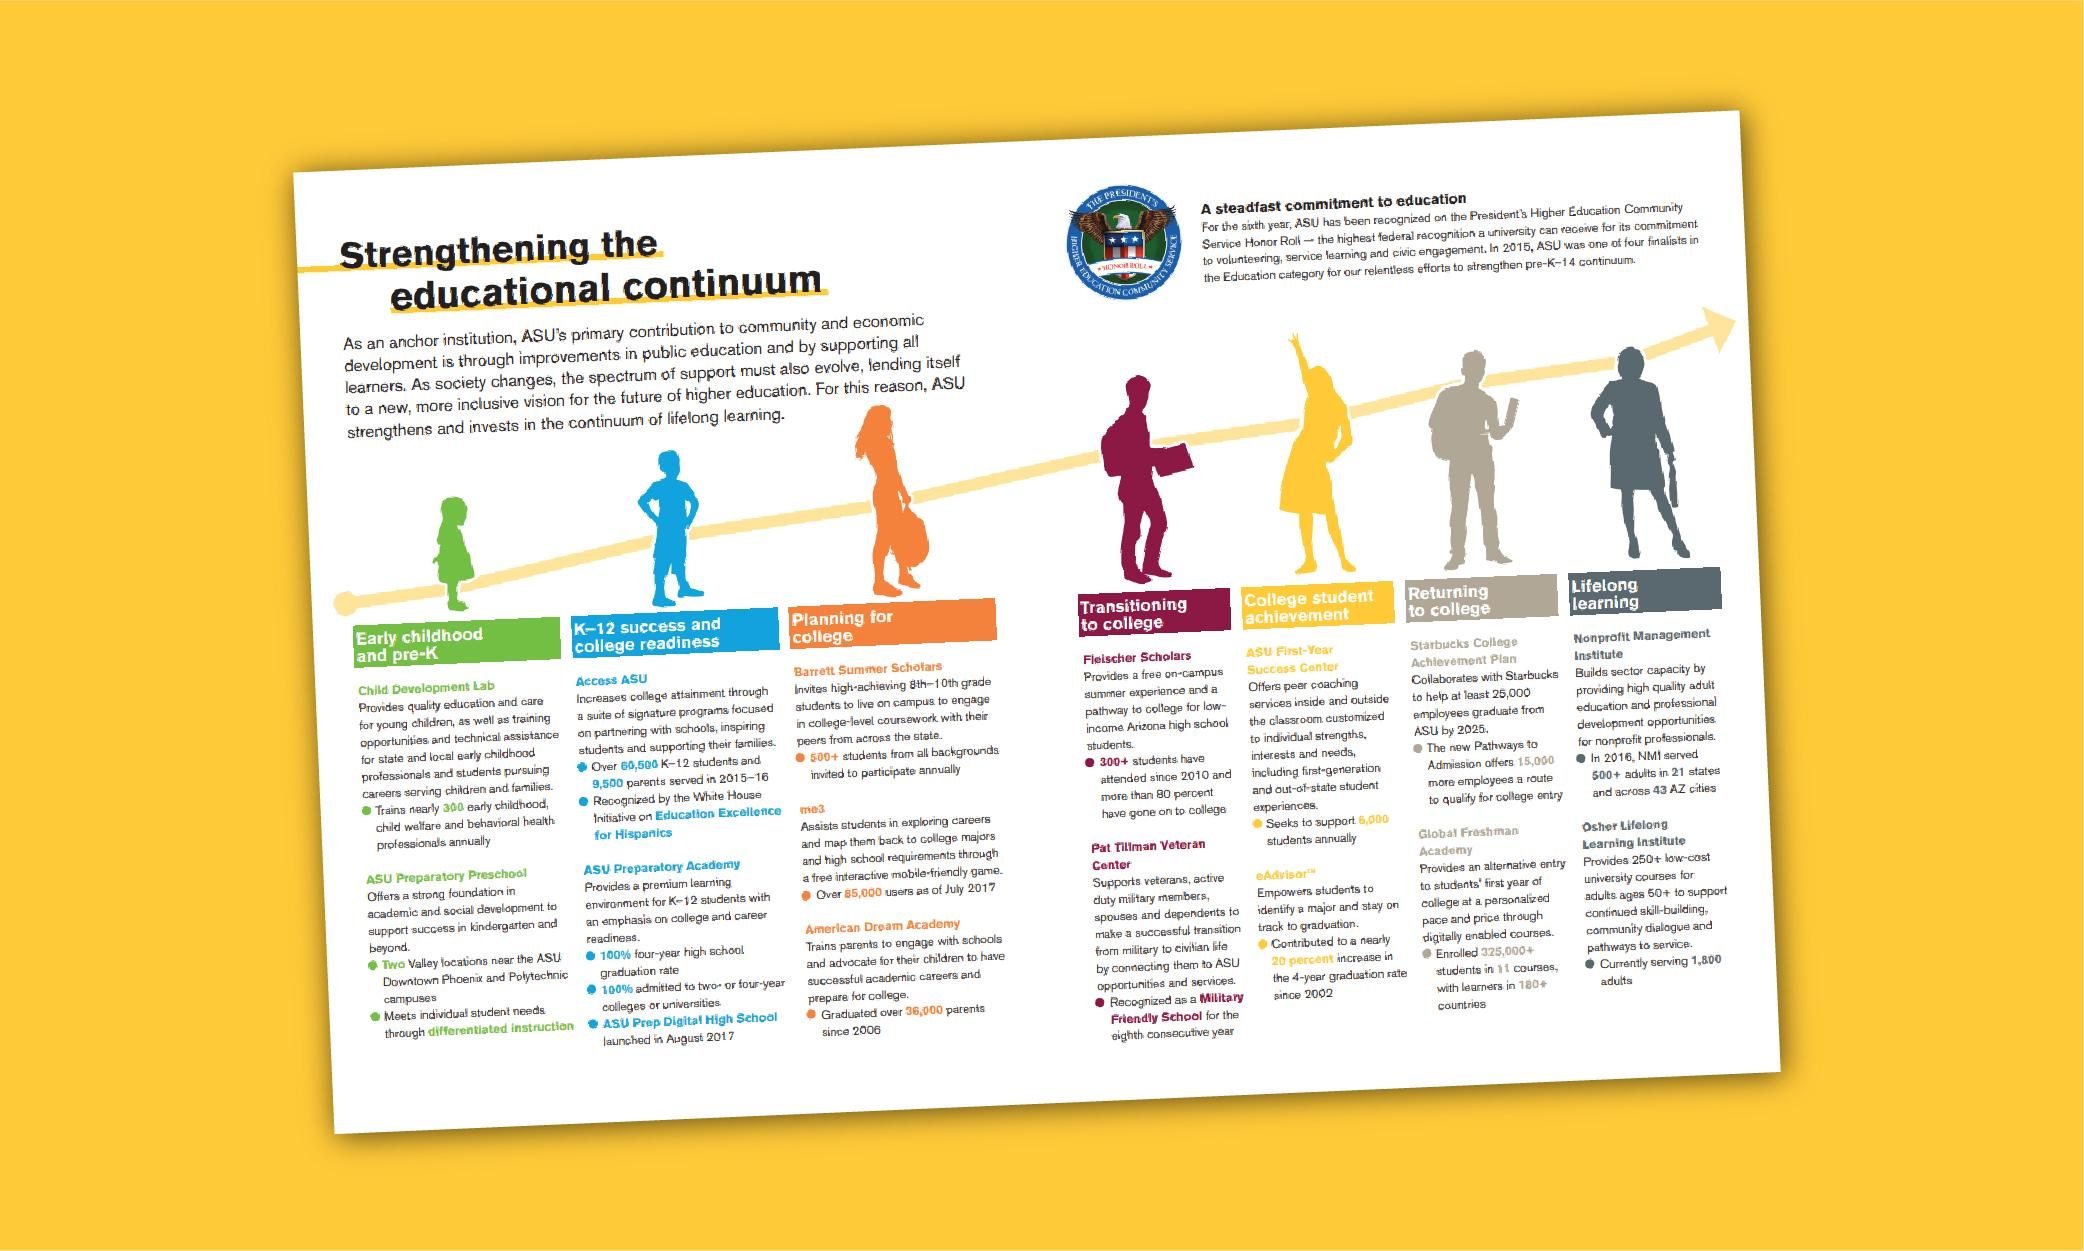 Strengthening the educational continuum